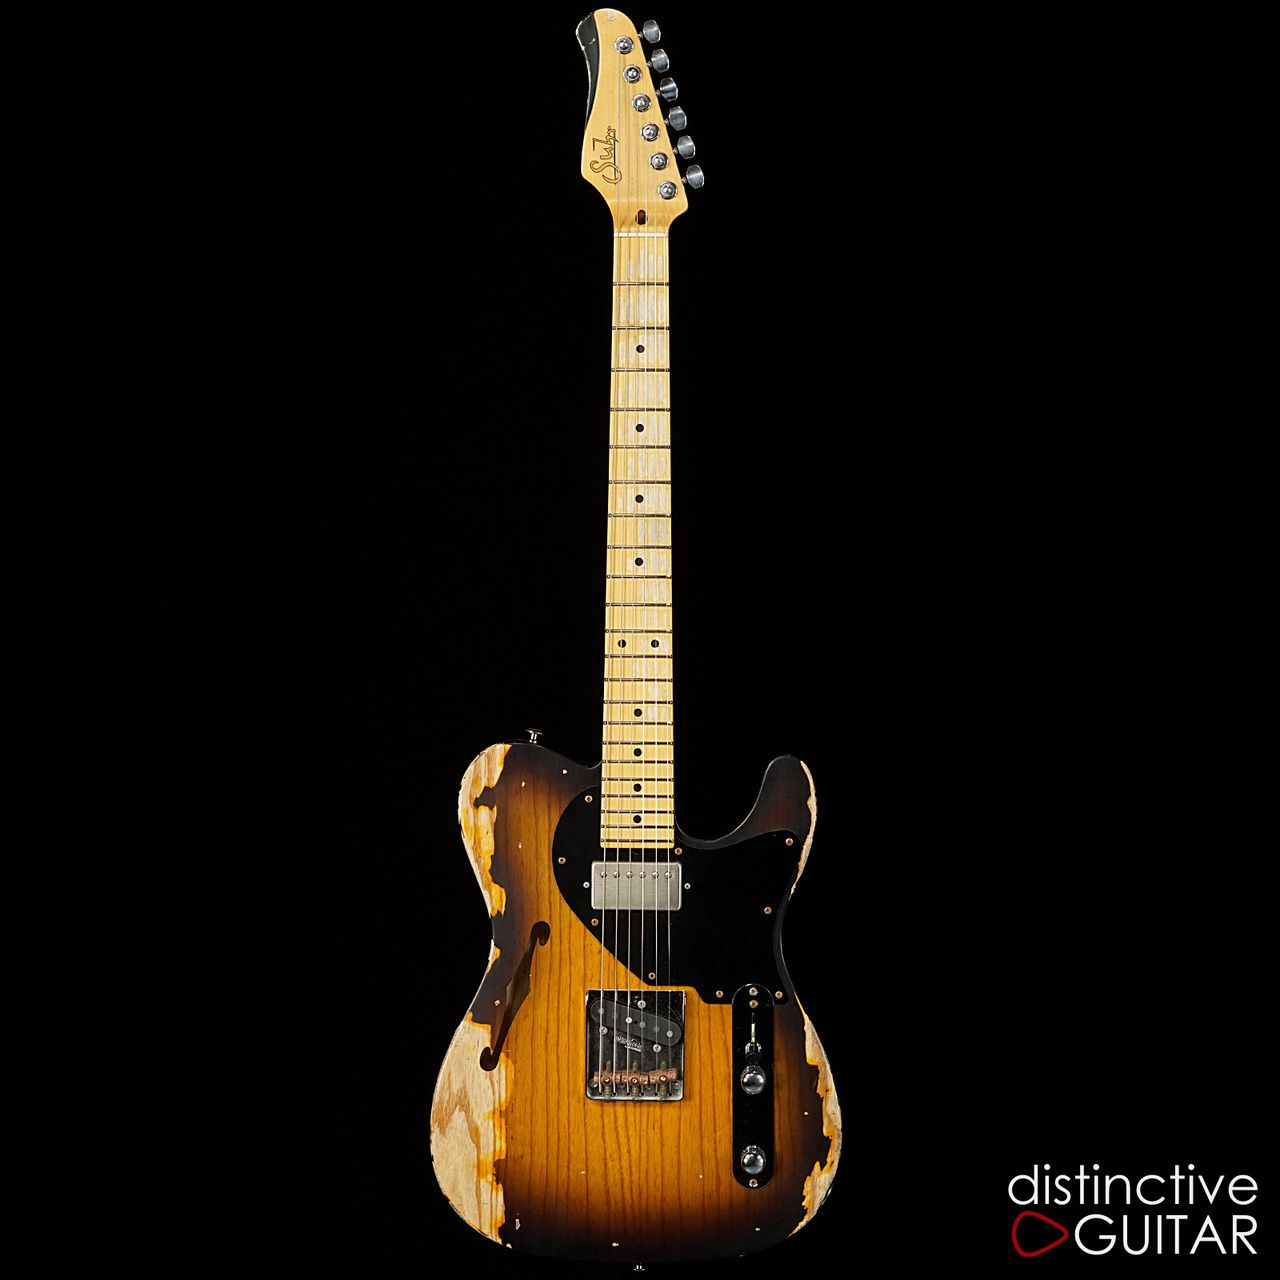 Anderson Guitar Wiring